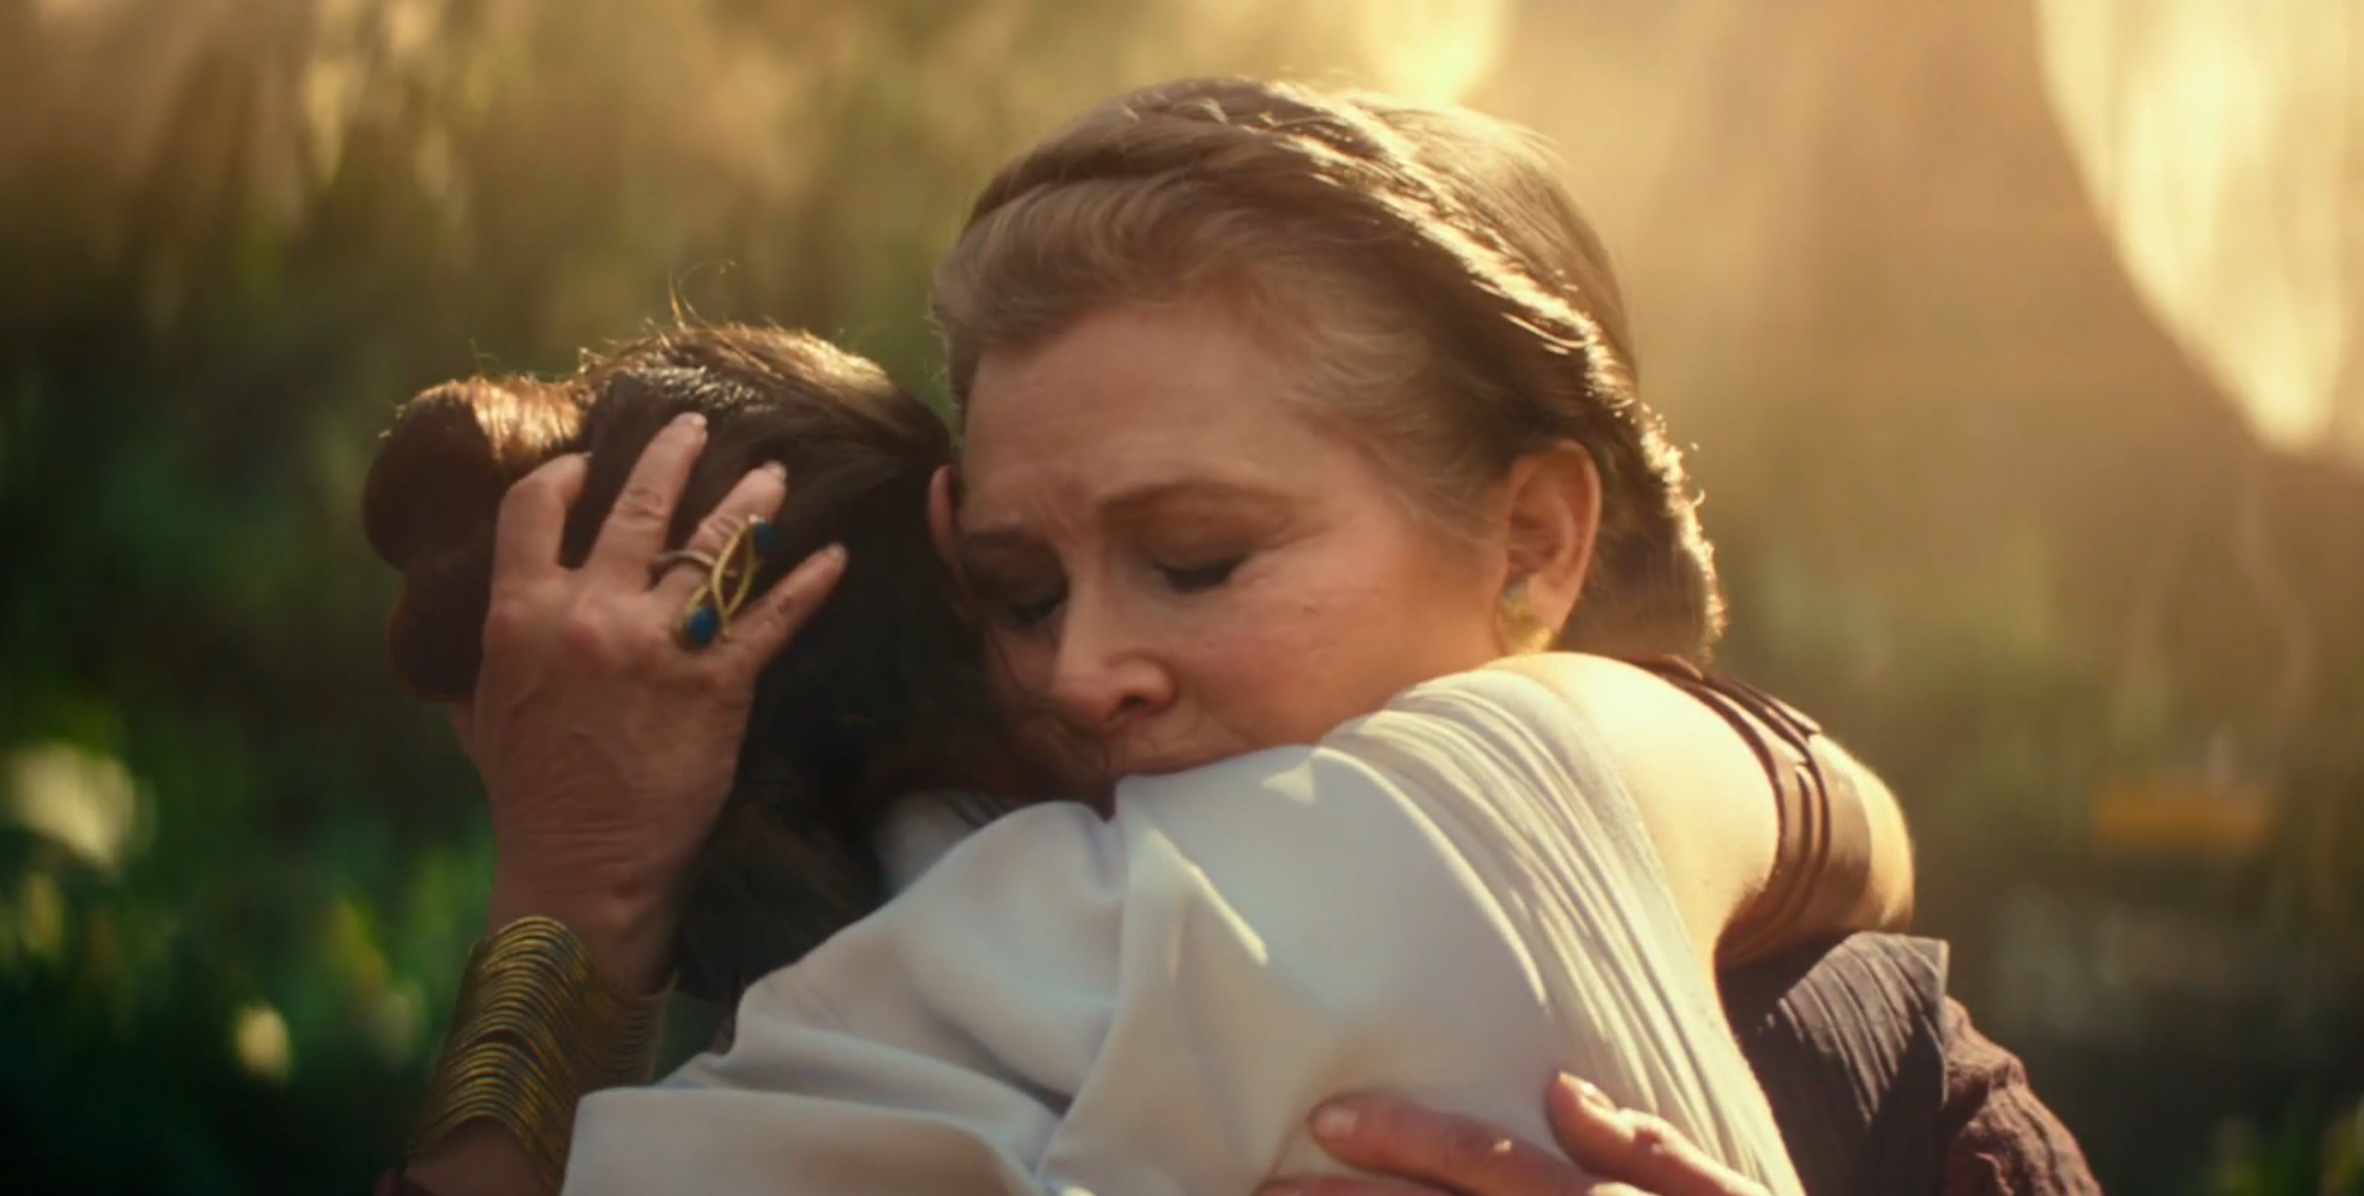 Star Wars: The Rise of Skywalker - L'abbraccio tra Daisy Ridley e Carrie Fisher nel primo teaser